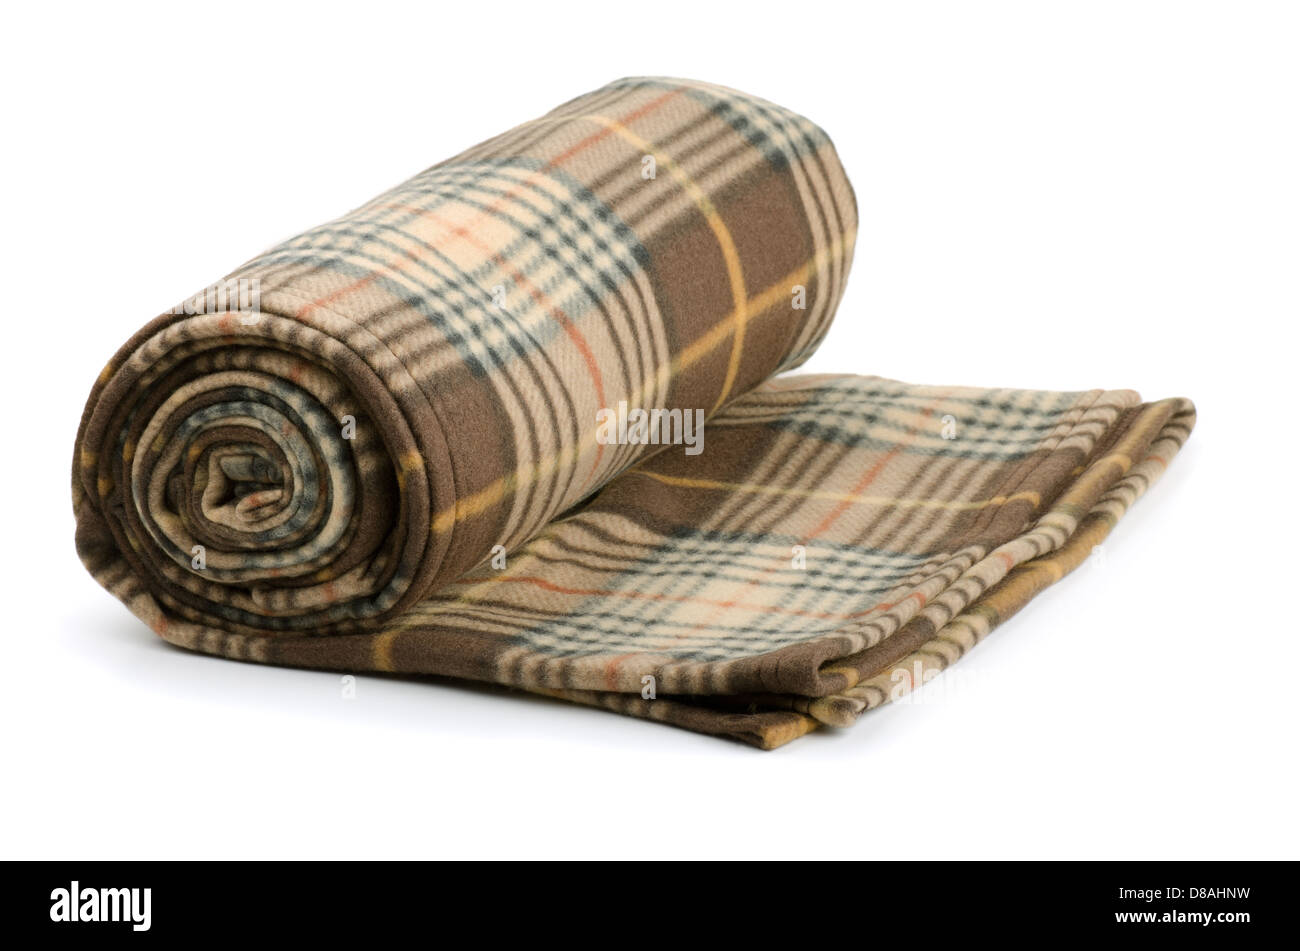 Rolled plaid wool blanket isolated on white - Stock Image